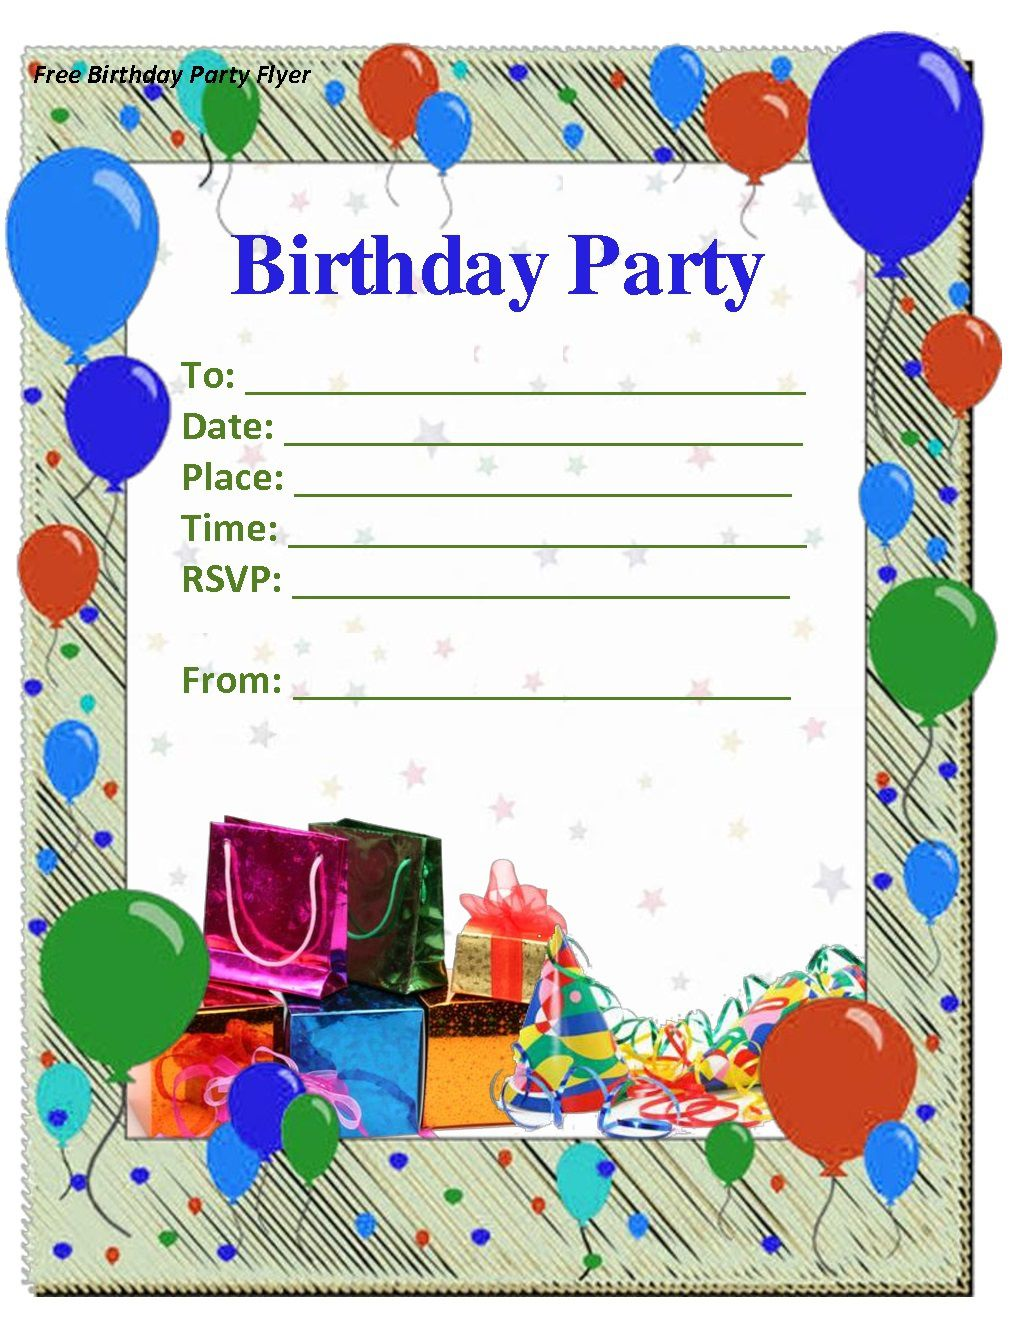 009 Impressive Birthday Party Invitation Template Word Free High Definition  Download InviteFull